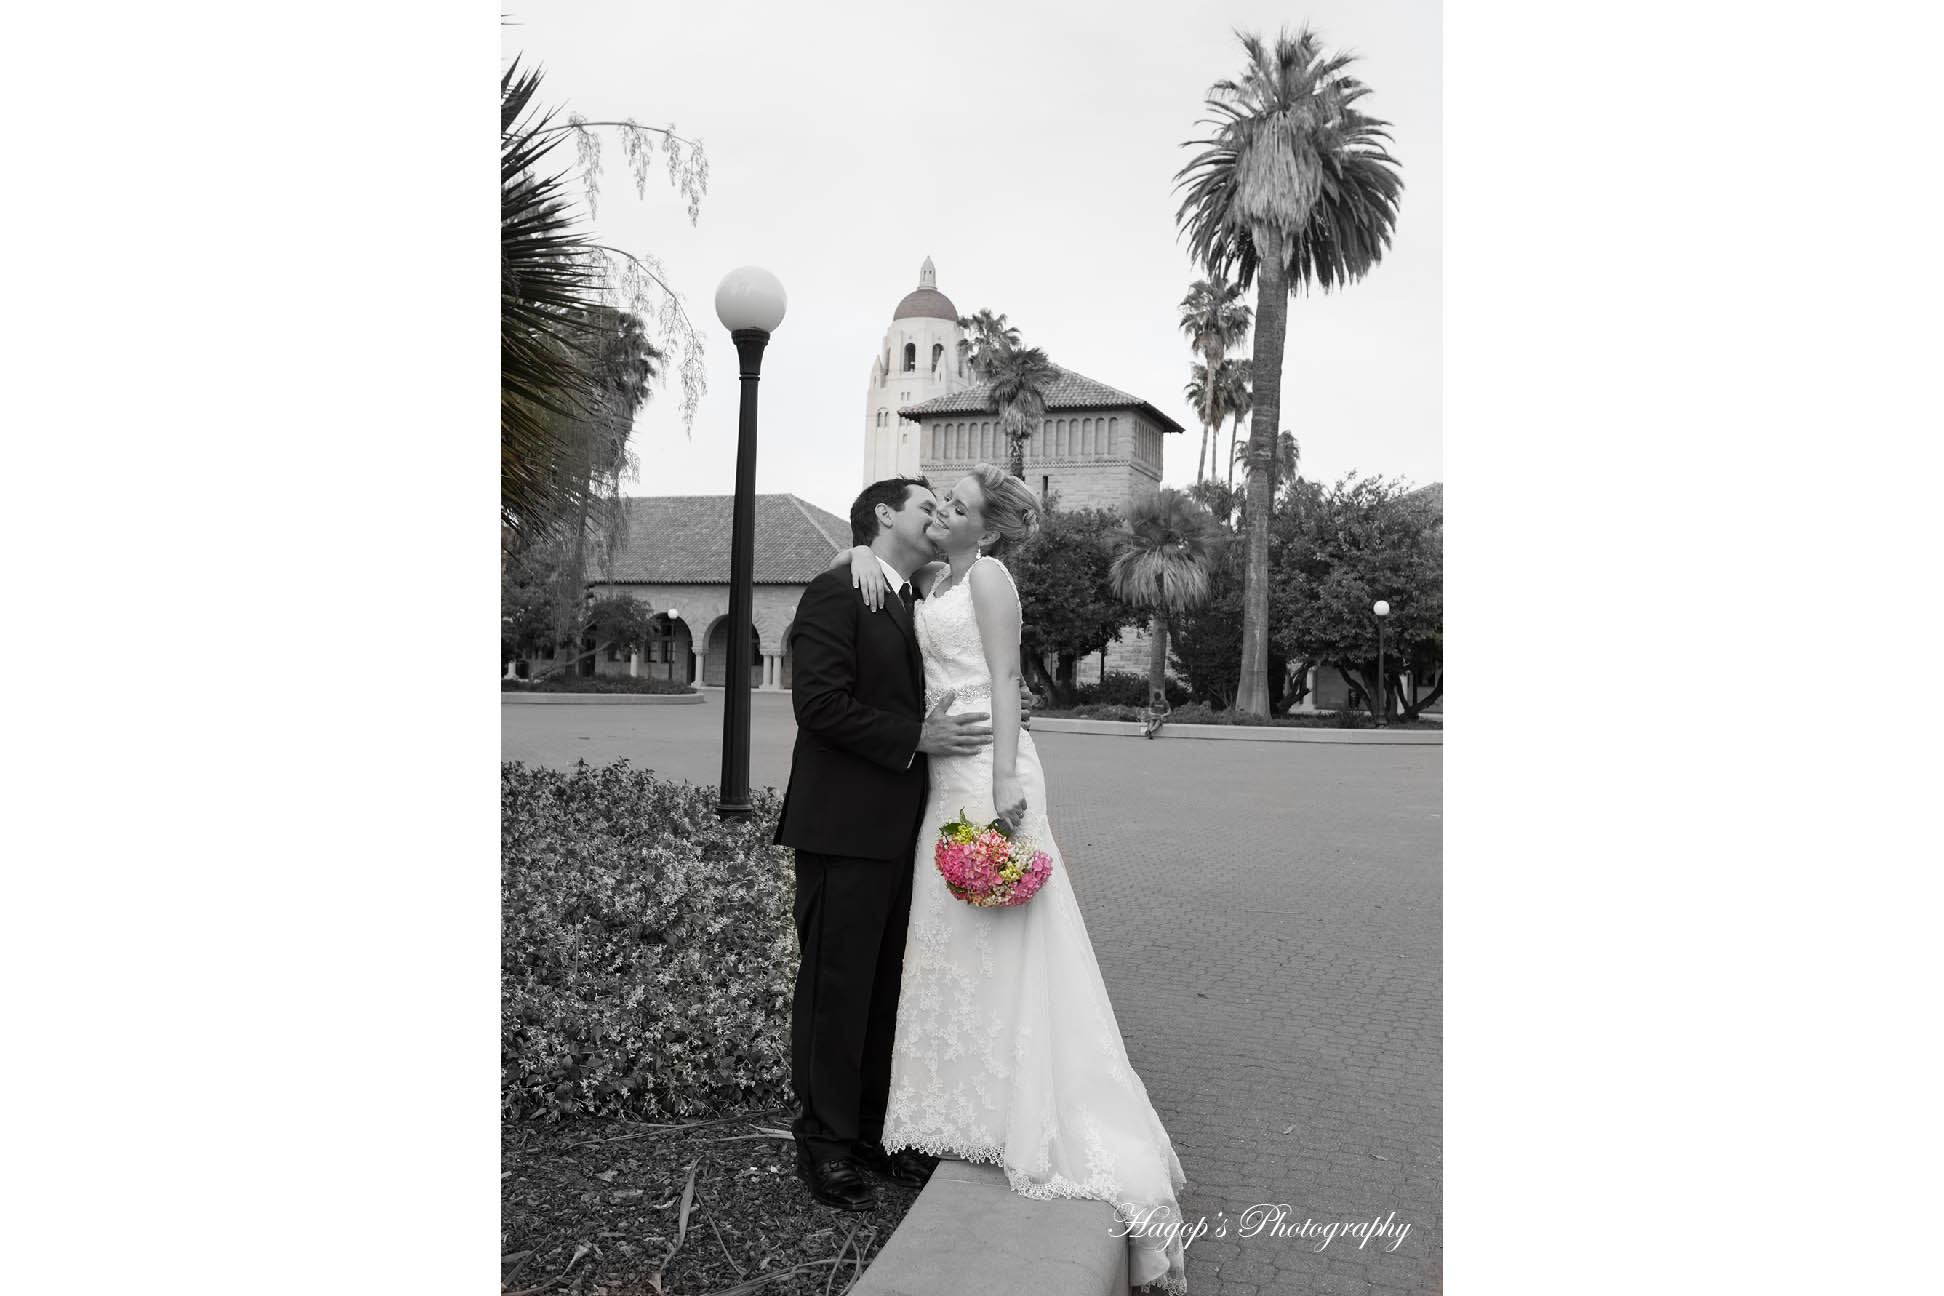 bw color mix romantic photo of the married couple